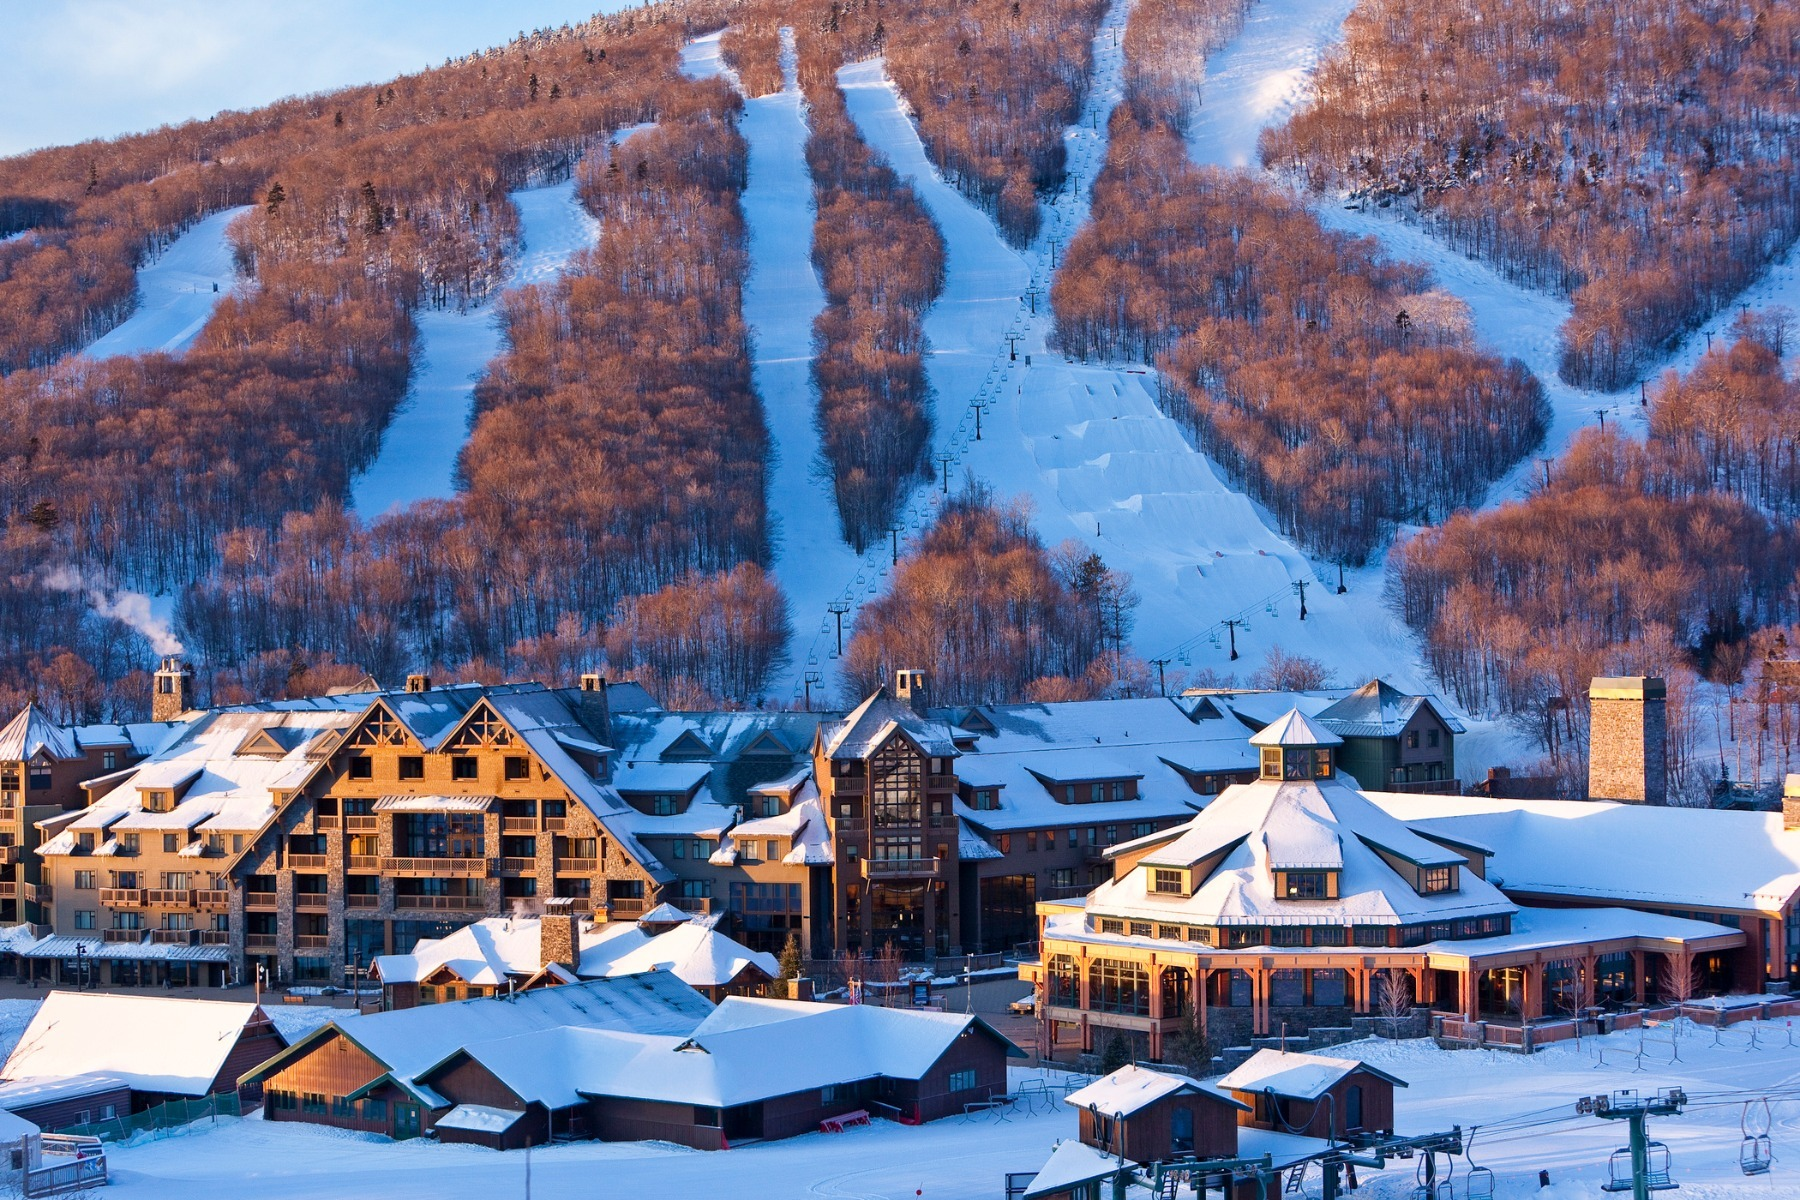 Stowe Mountain Resortundefined